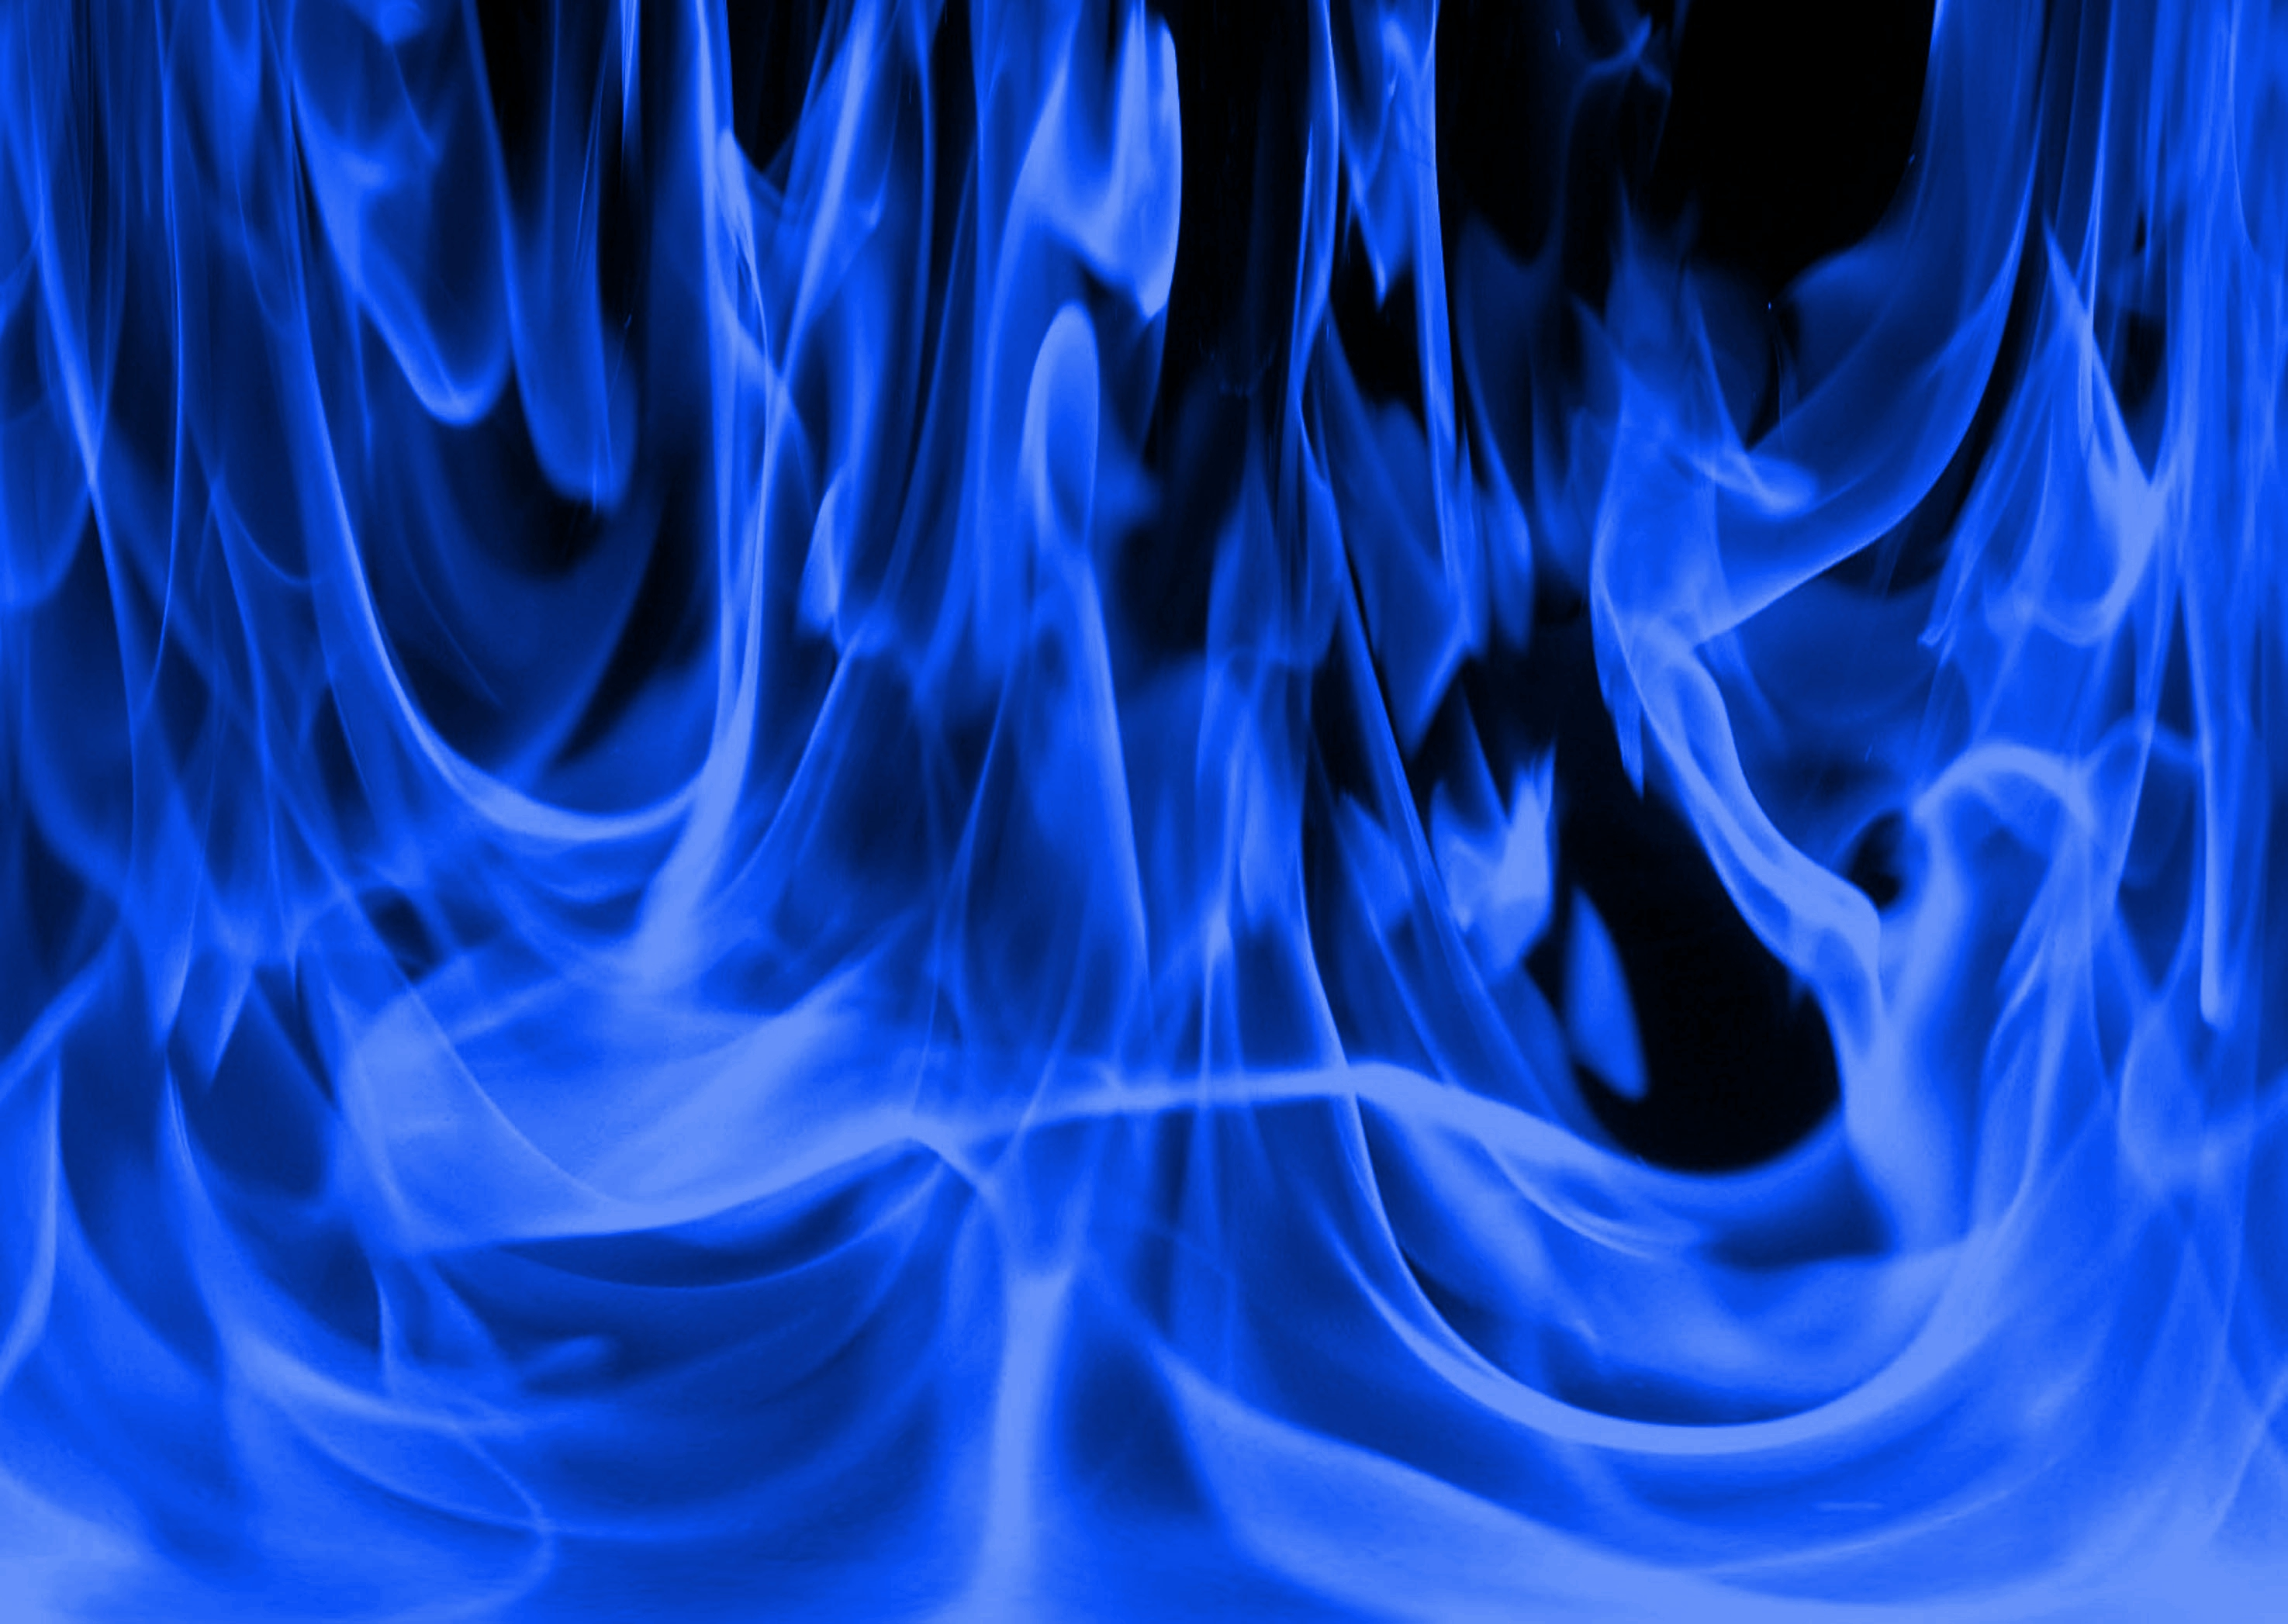 Blue and Red Fire Wallpaper wallpaper wallpaper hd background 2950x2094